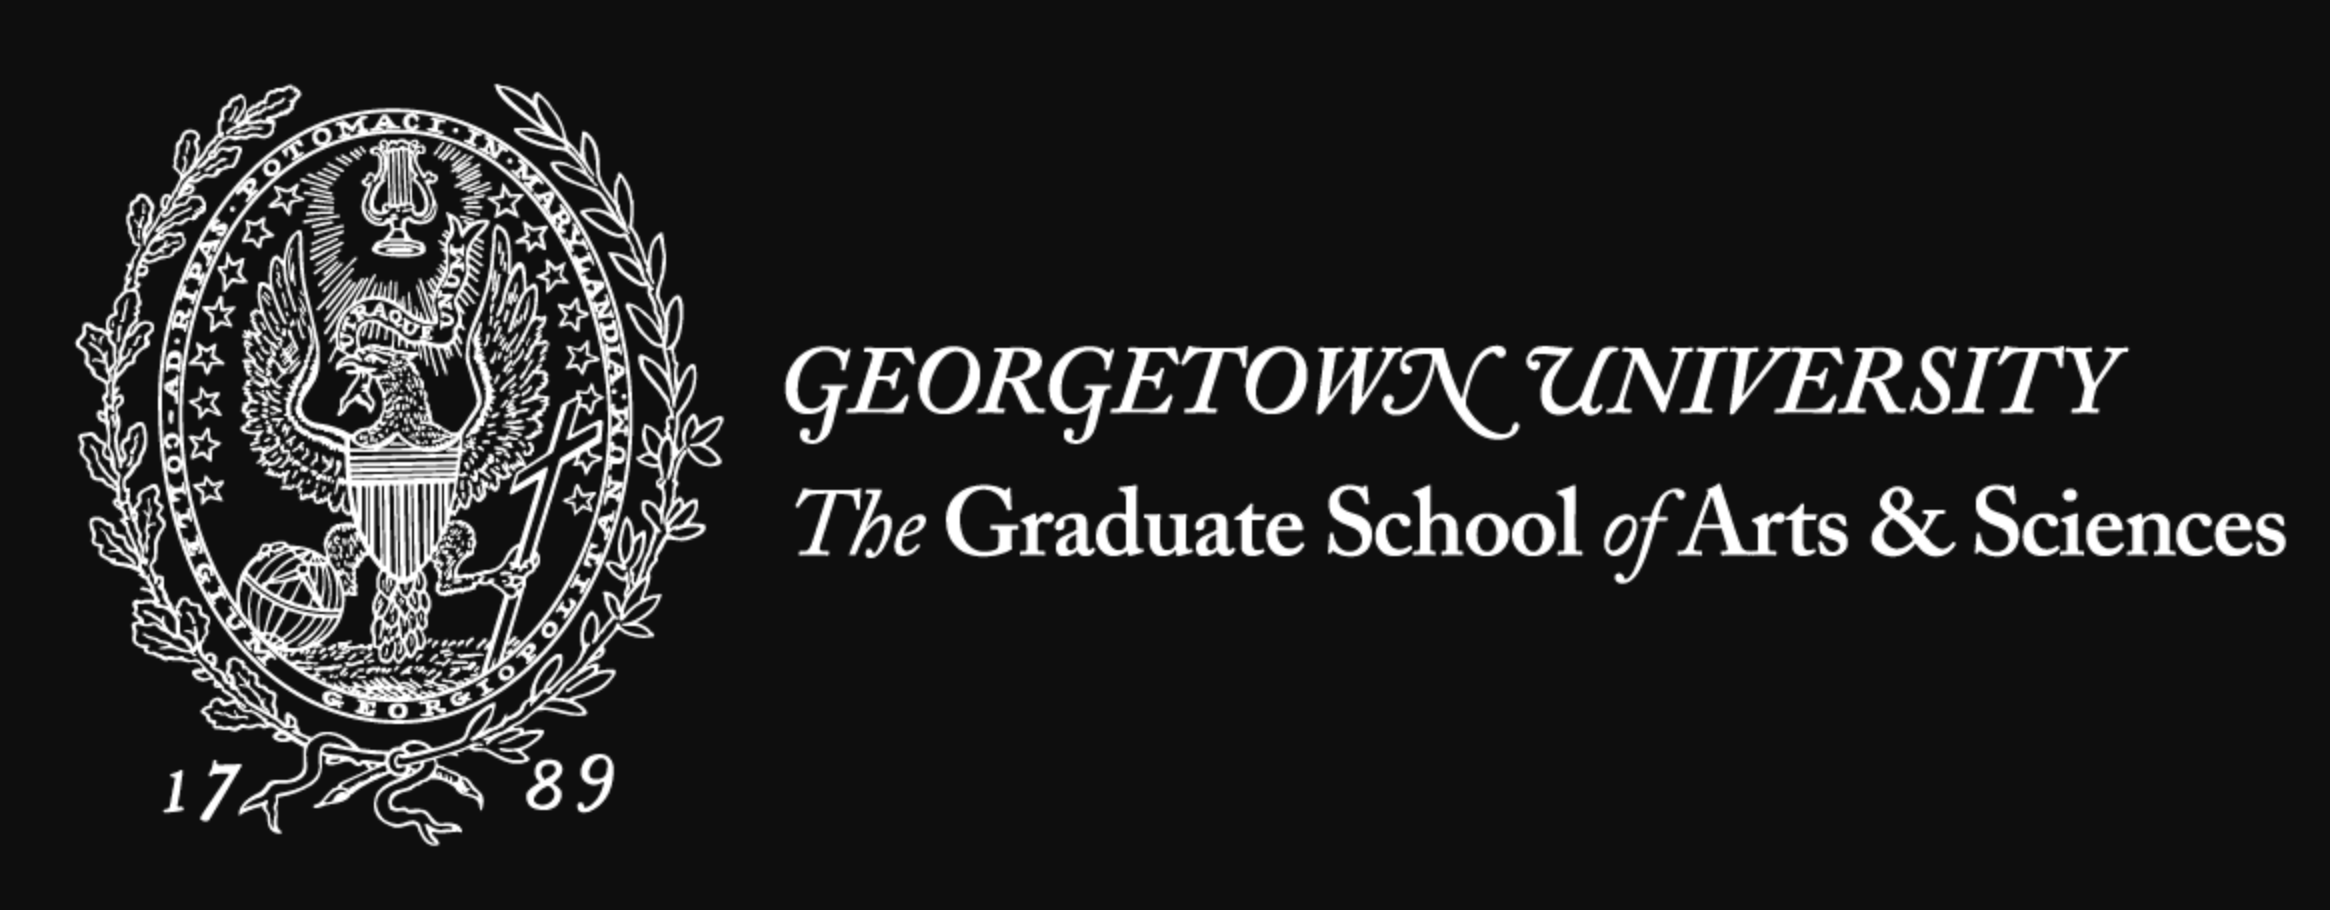 georgetown university masters thesis Rooted in interdisciplinary, values-oriented curriculum, the master of arts in liberal studies program will expand your philosophical and cultural horizons.